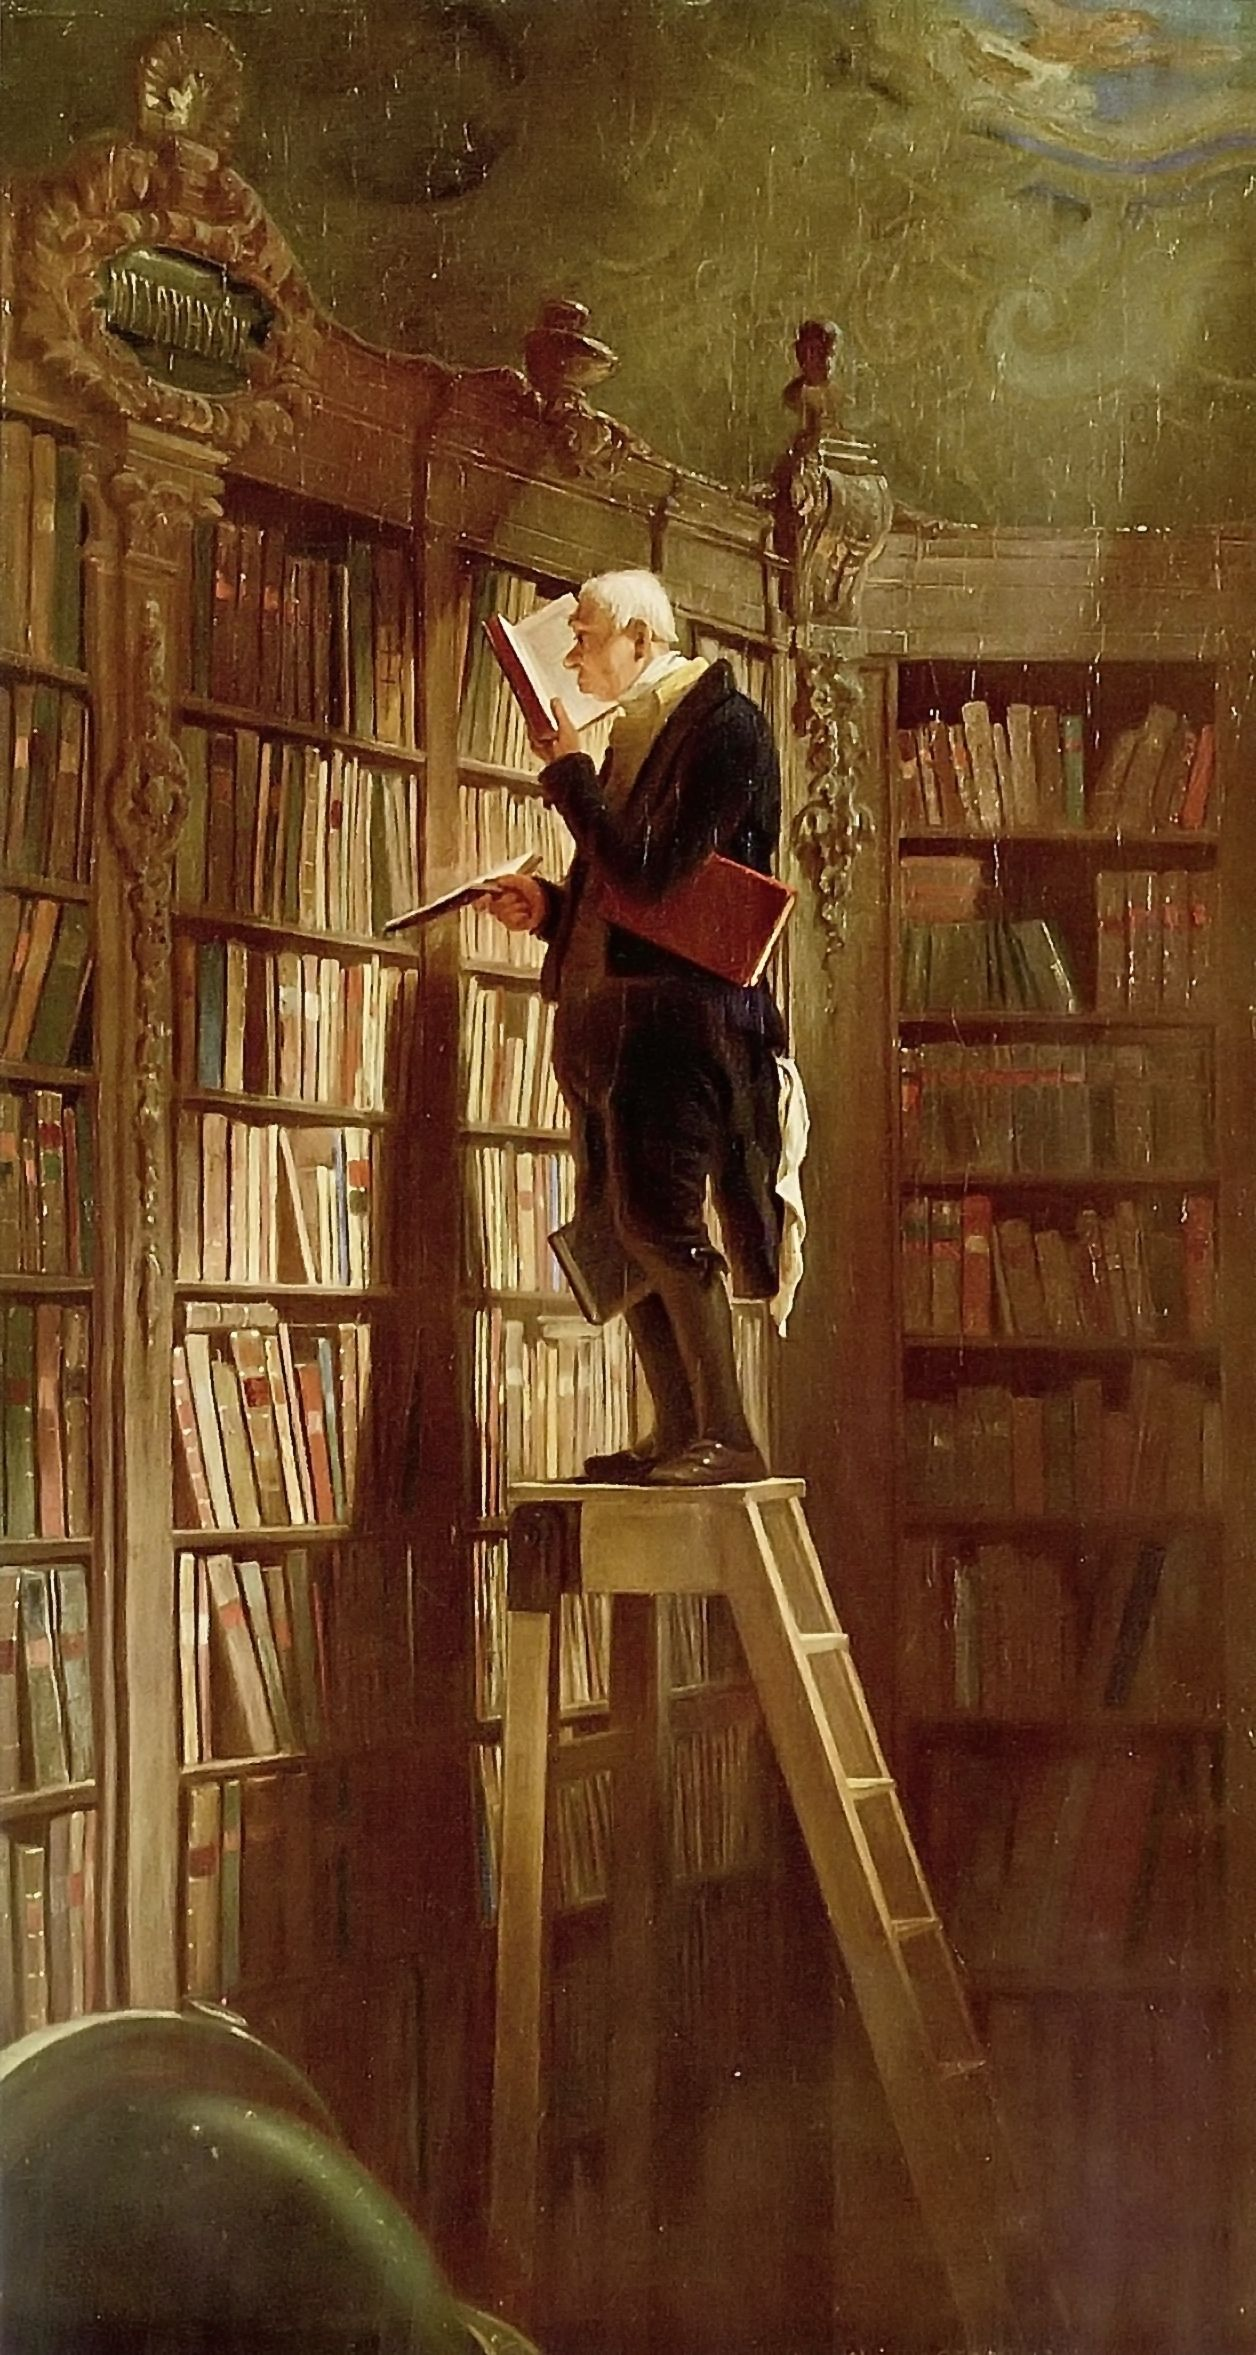 Carl Spitzweg: The Bookworm #bookstoread